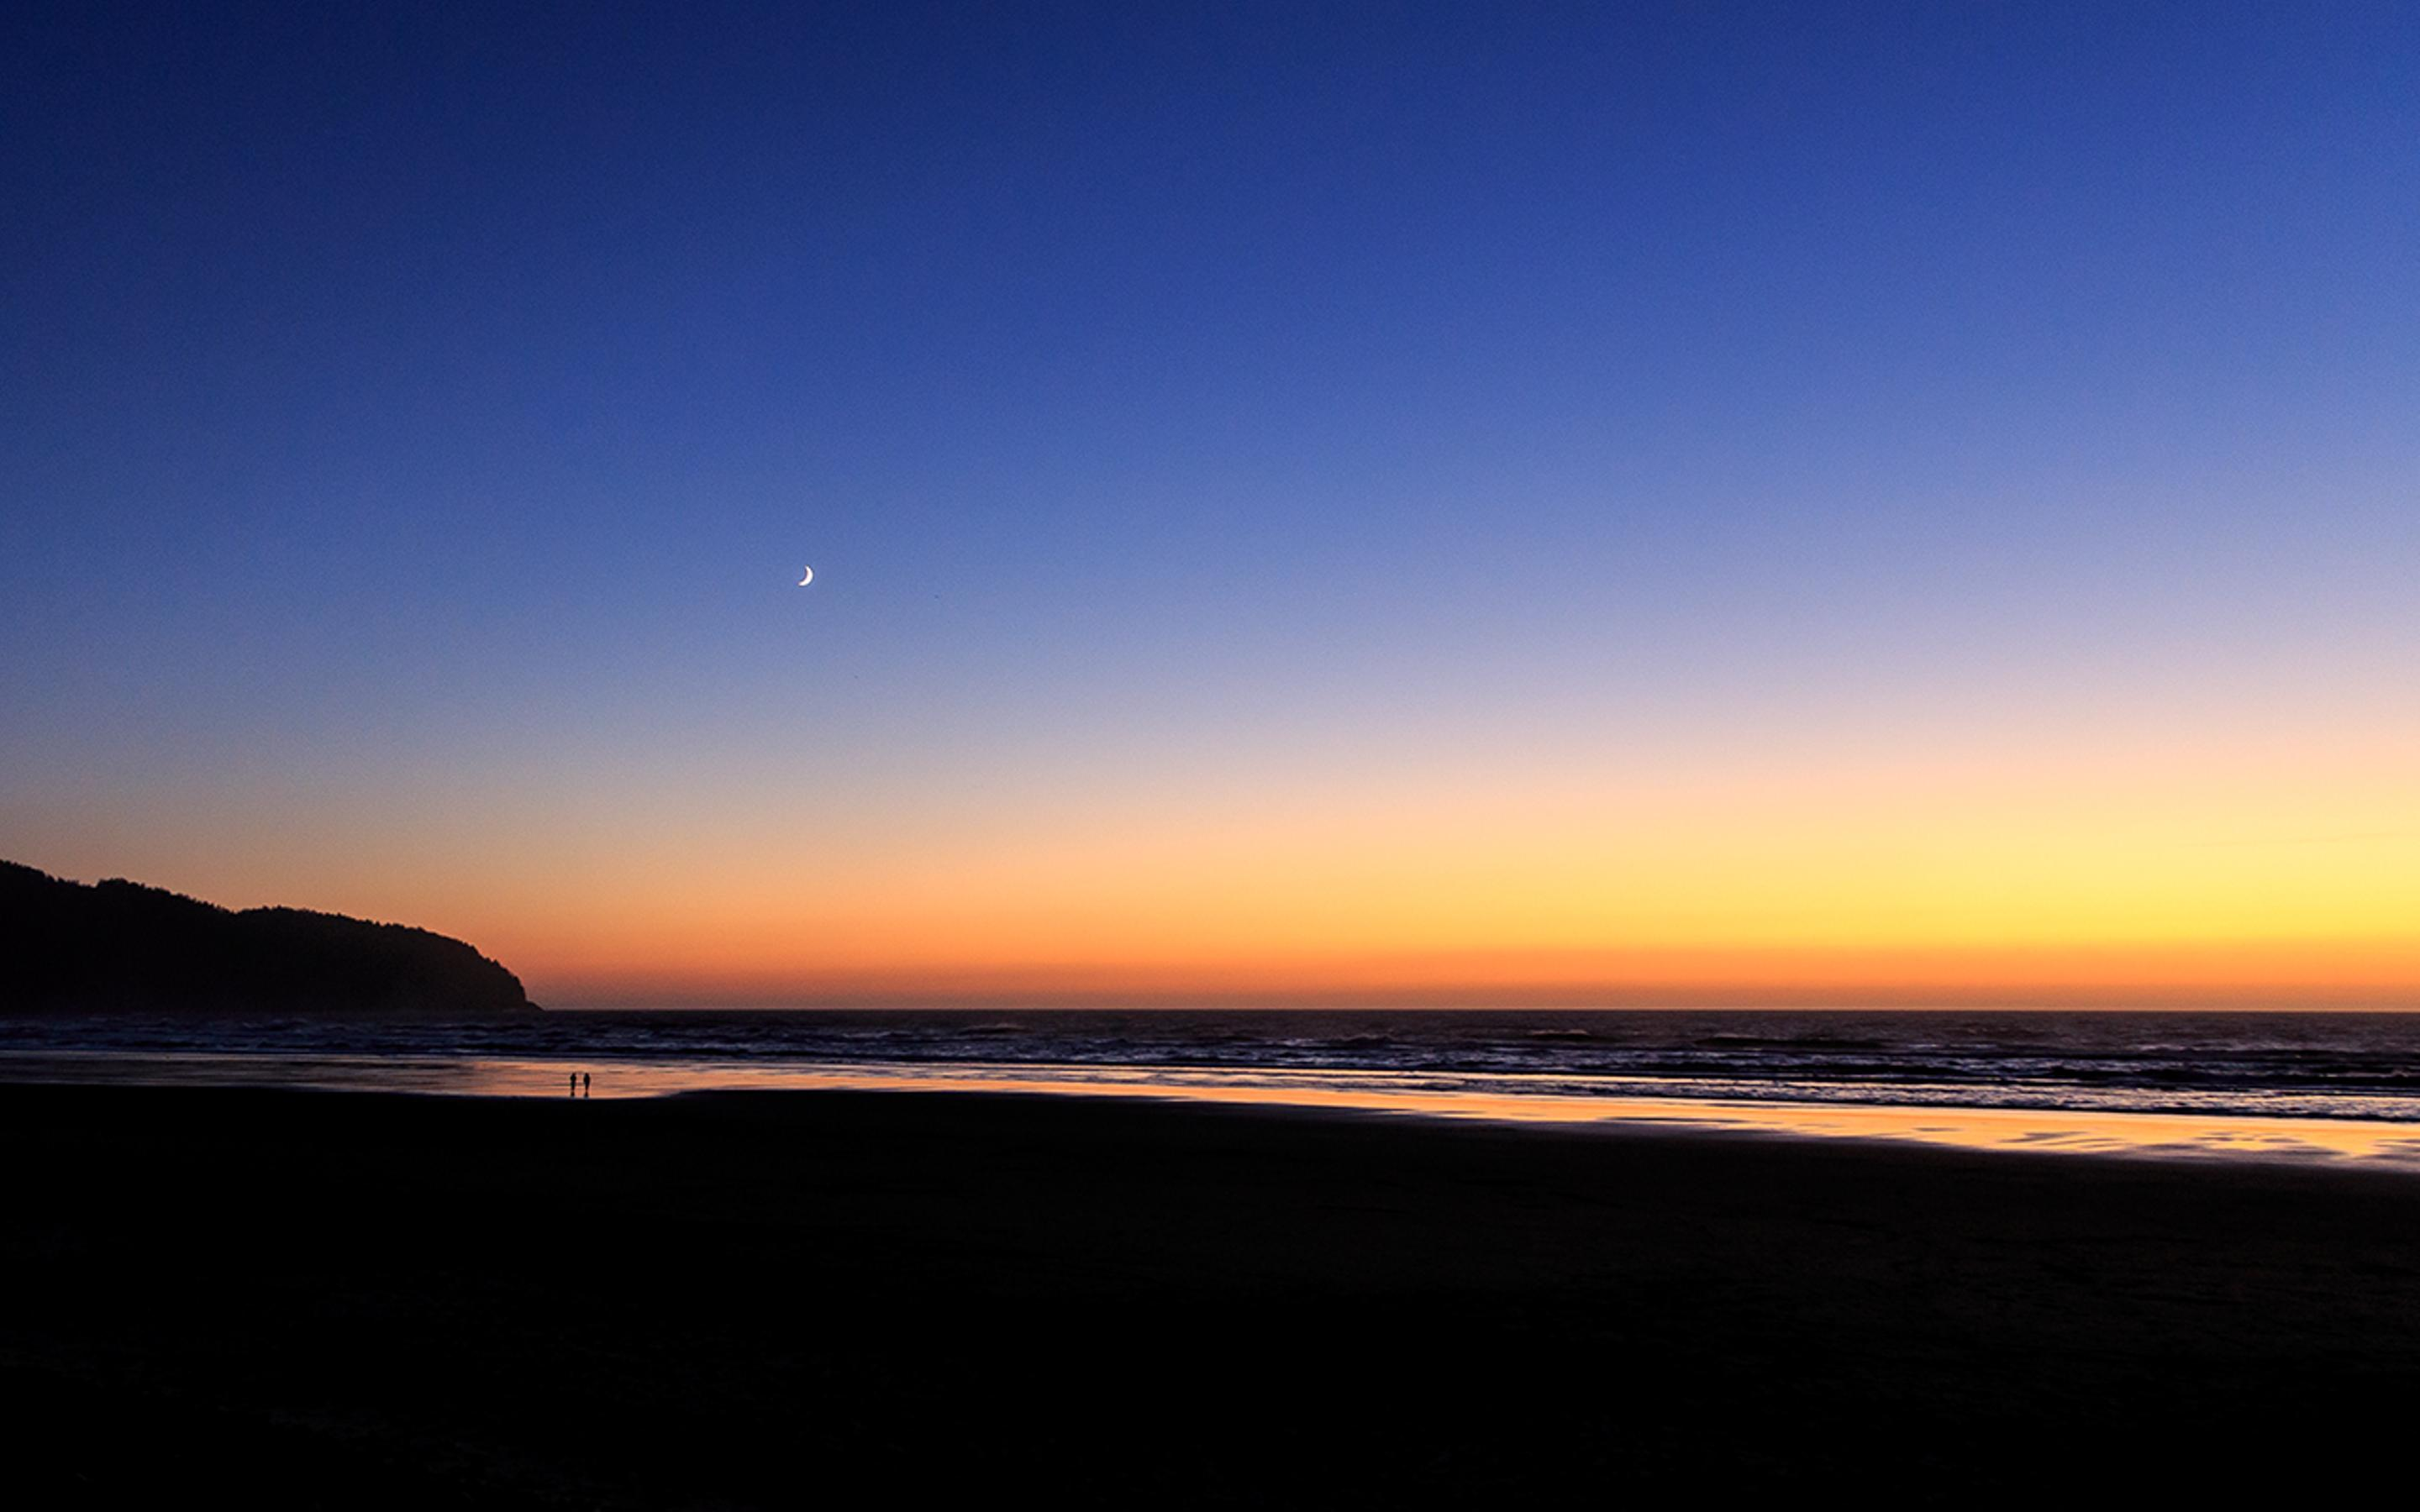 The Moon On The Clear Sky Sunset Over The Sea Wallpaper